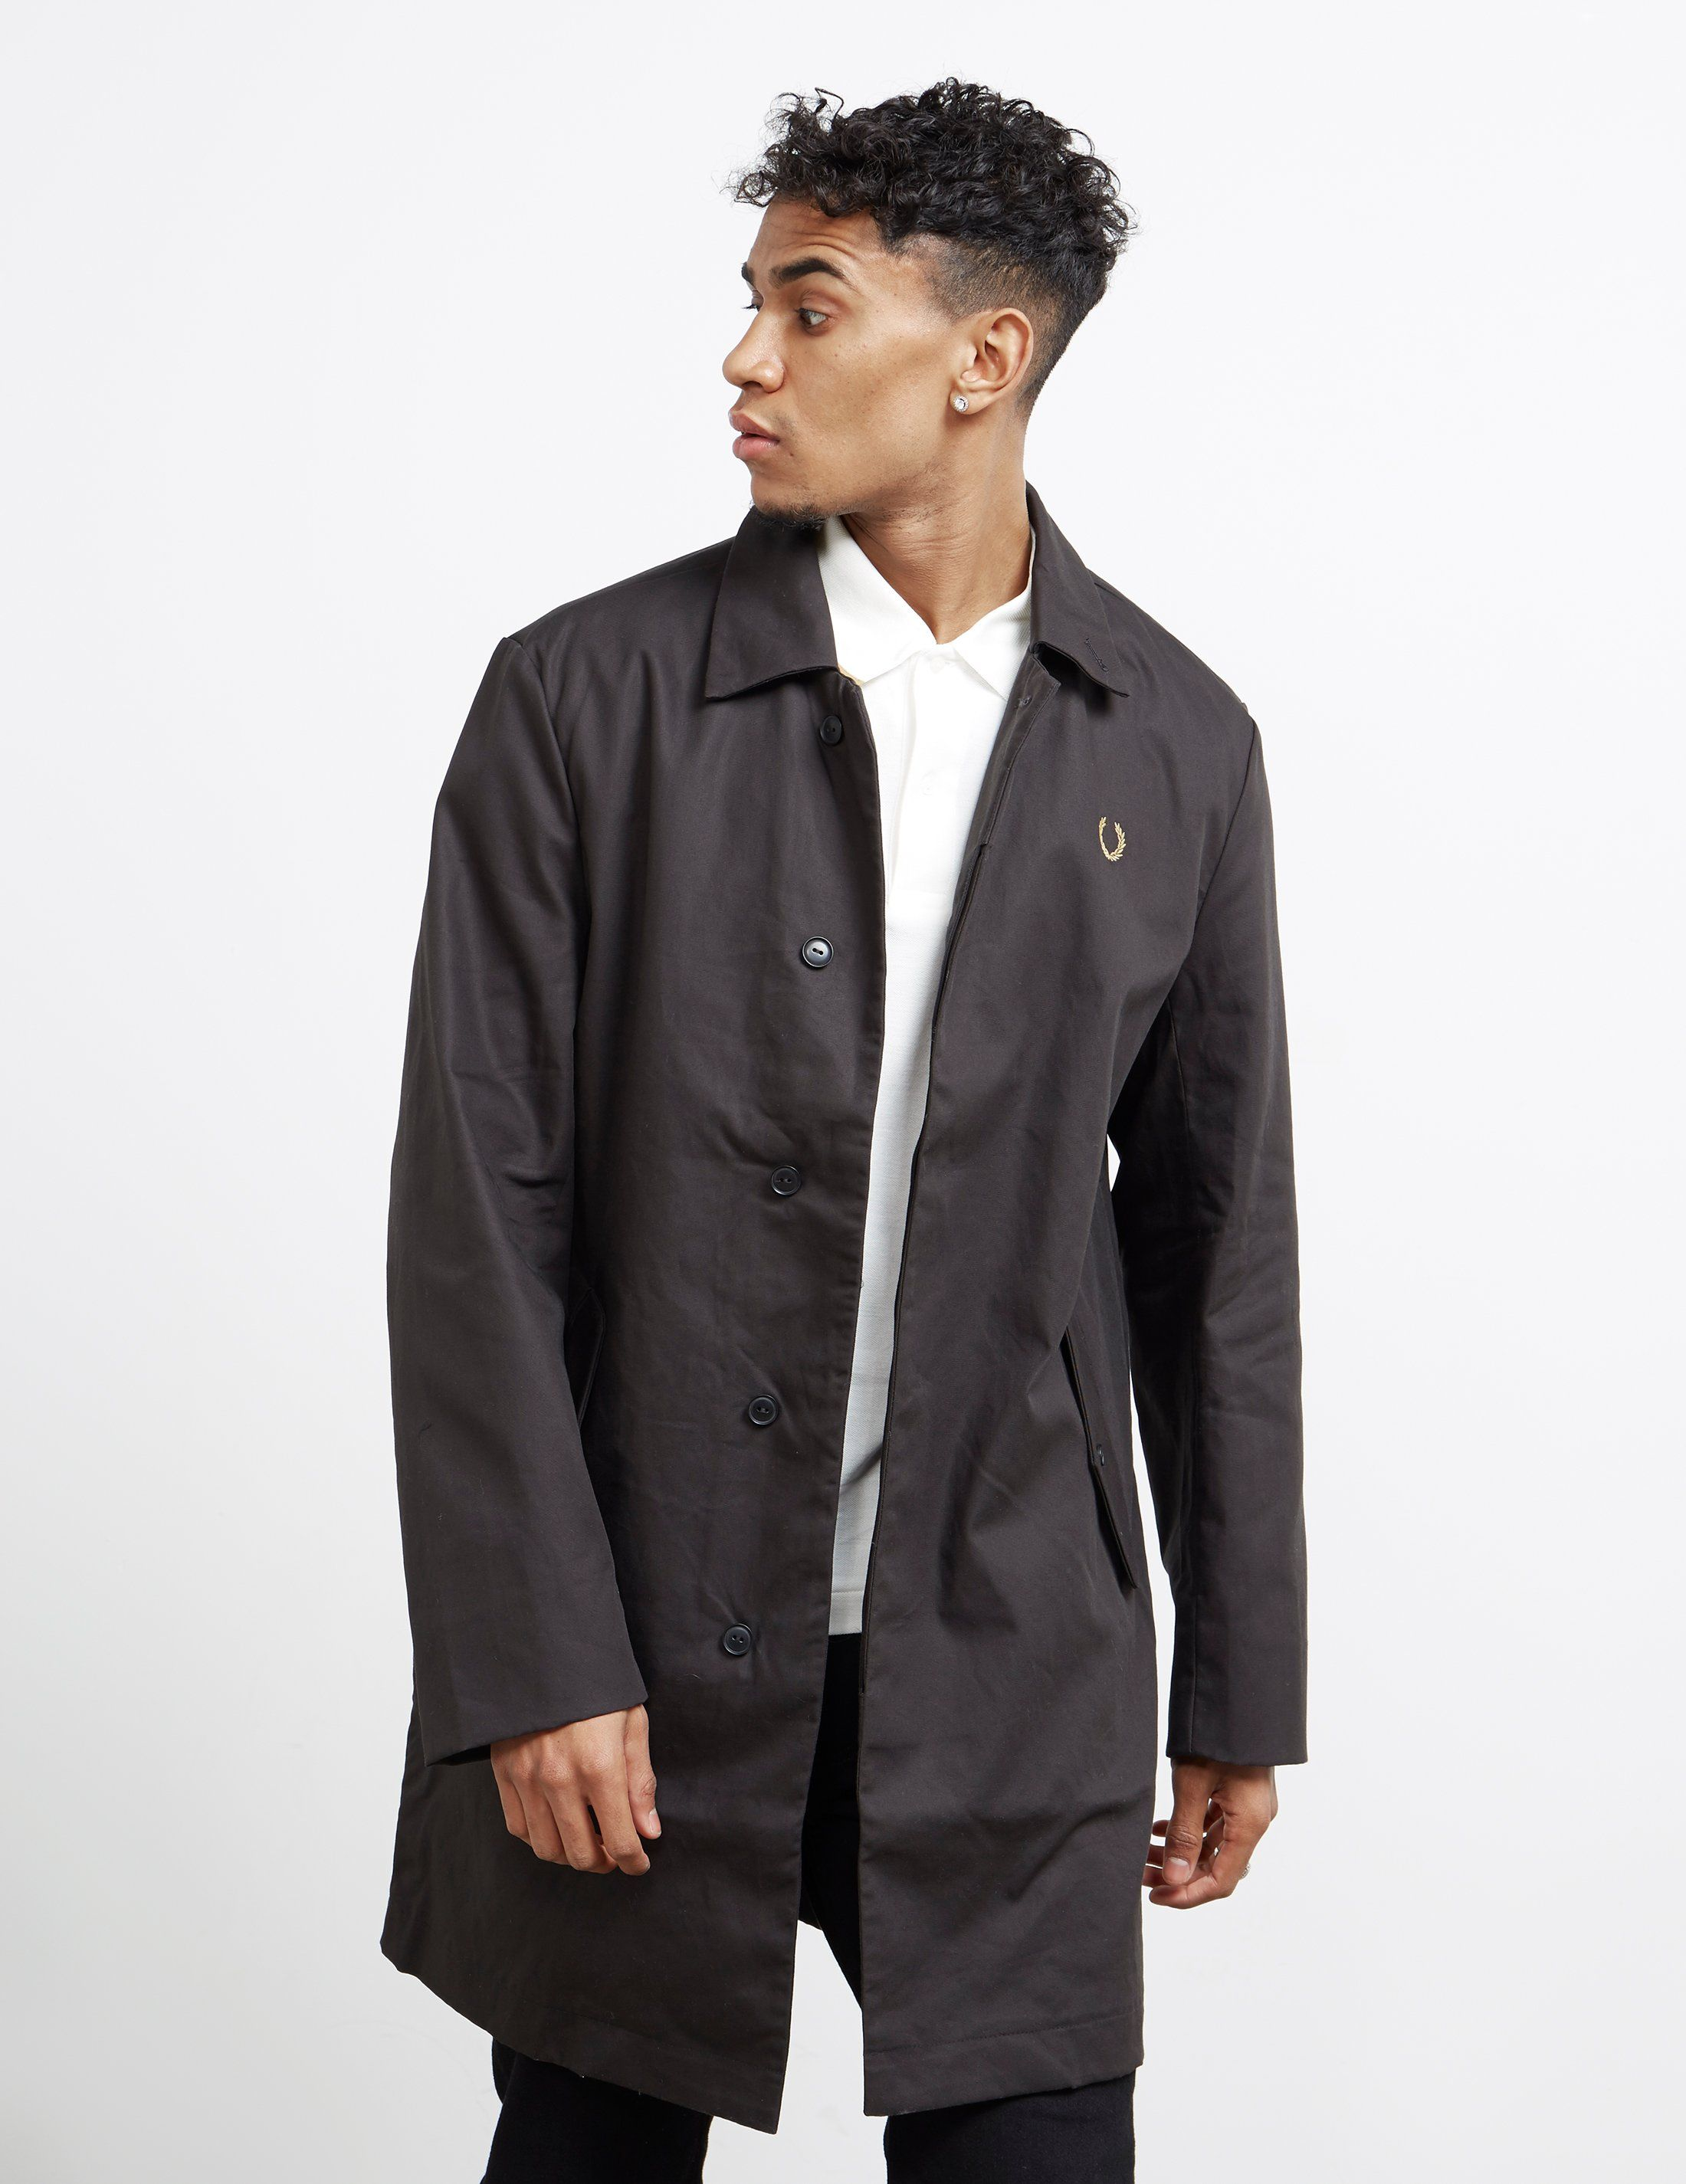 Fred Perry x Miles Kane Liberty Trim Lightweight Jacket